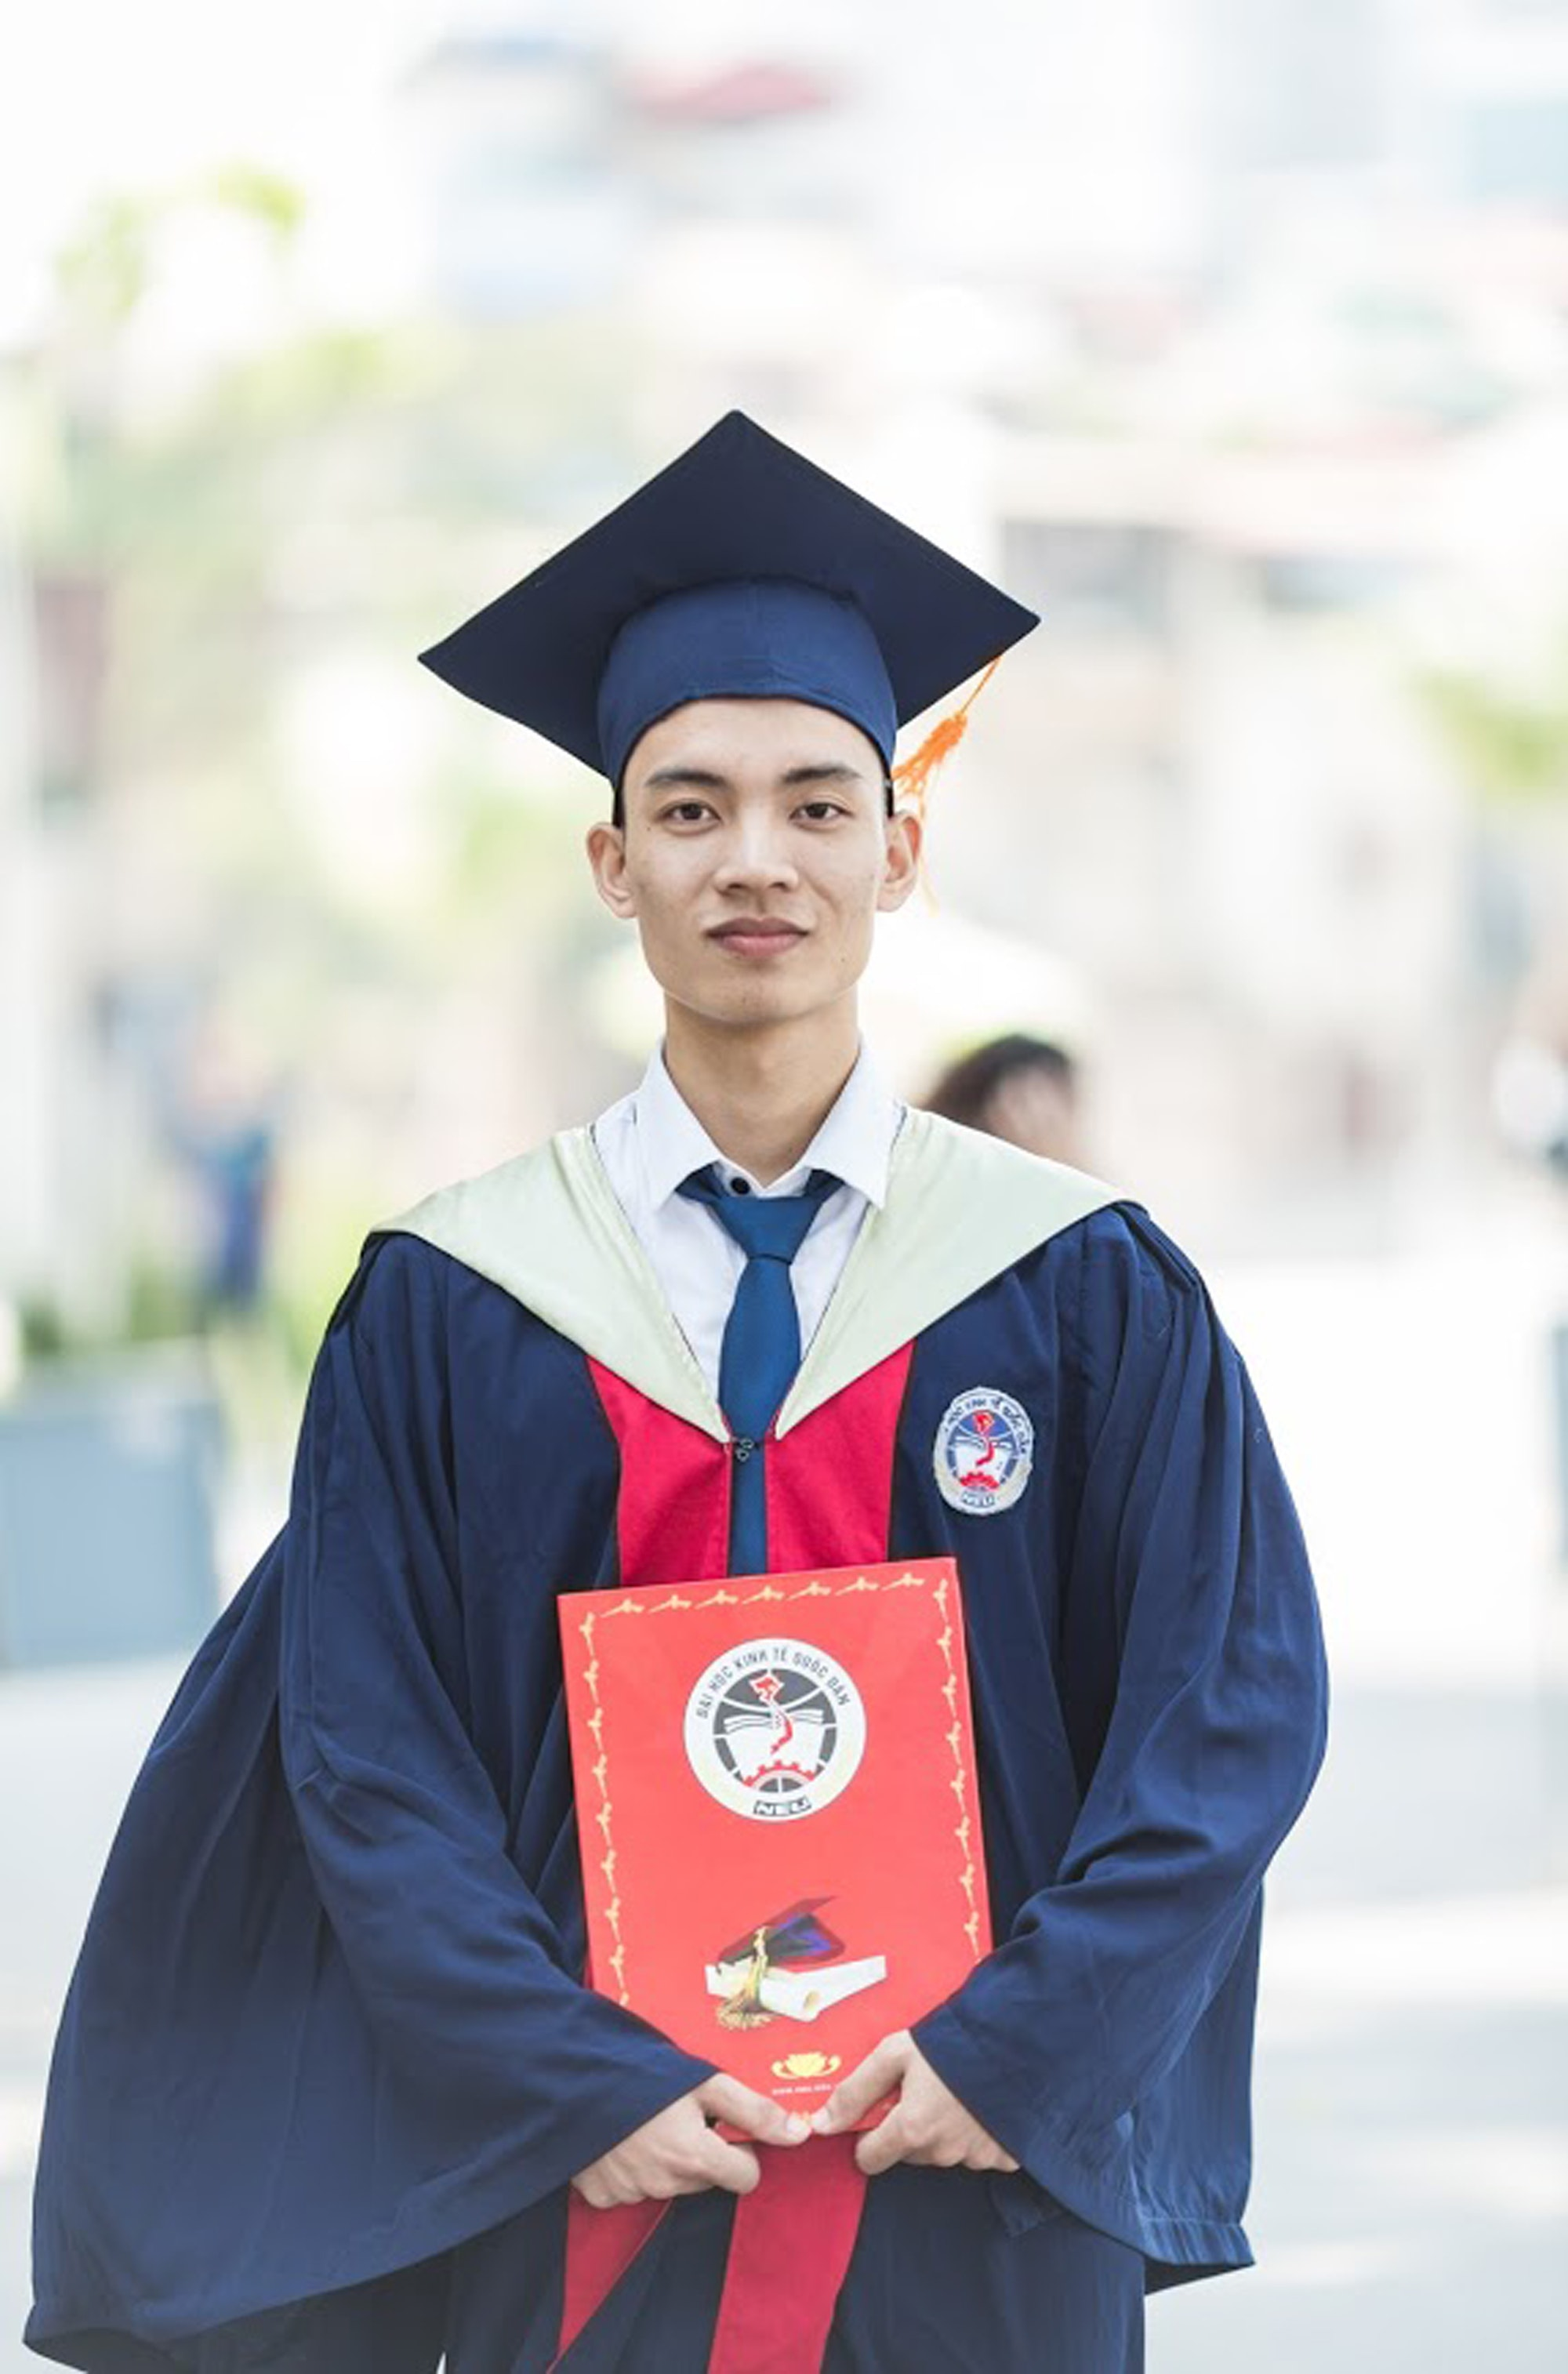 academic-degree-cap-ceremony-1007066.jpg